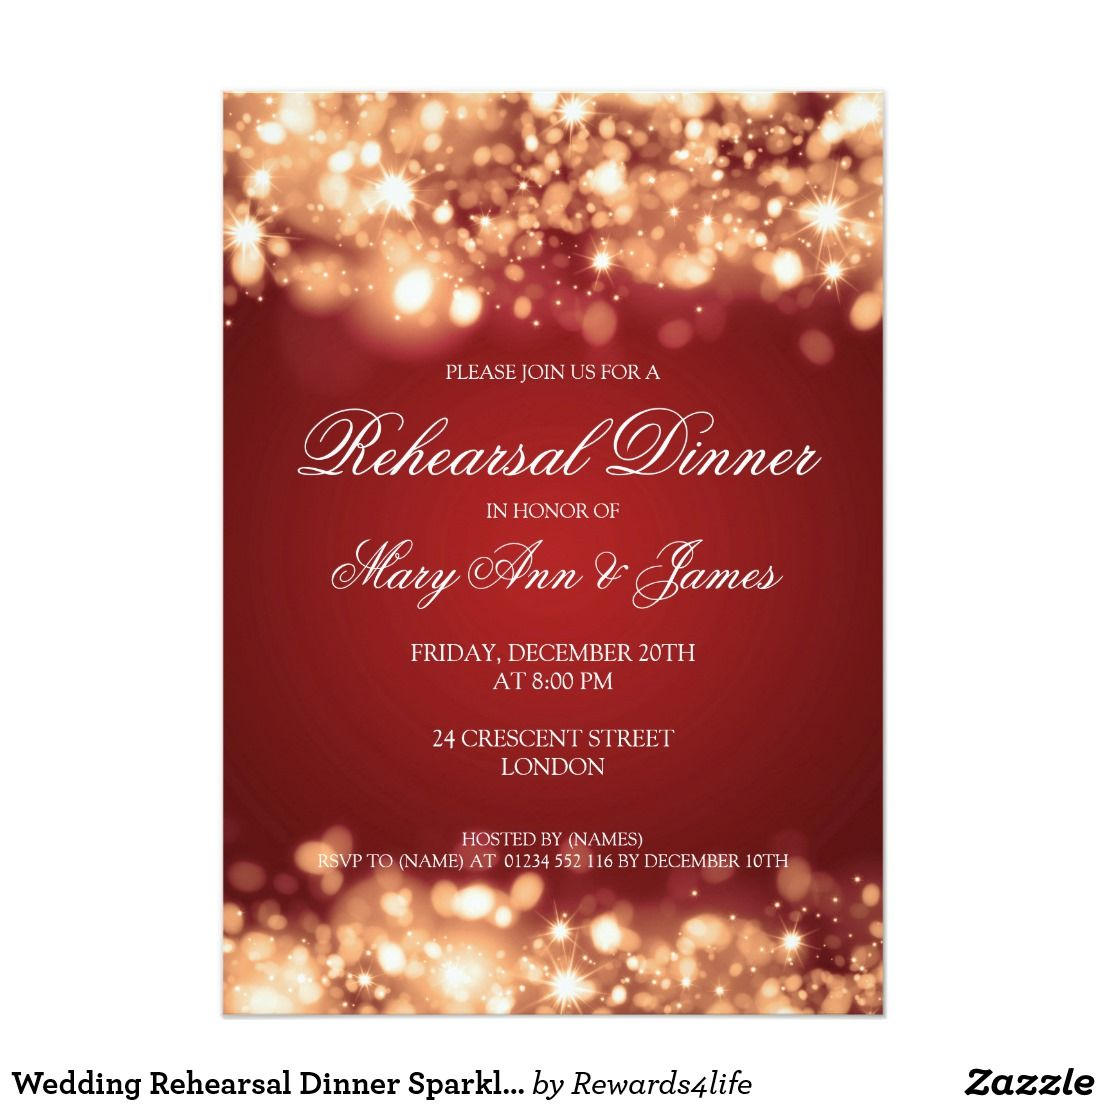 Wedding Rehearsal Dinner Sparkling Lights Gold Card | Rehearsal ...